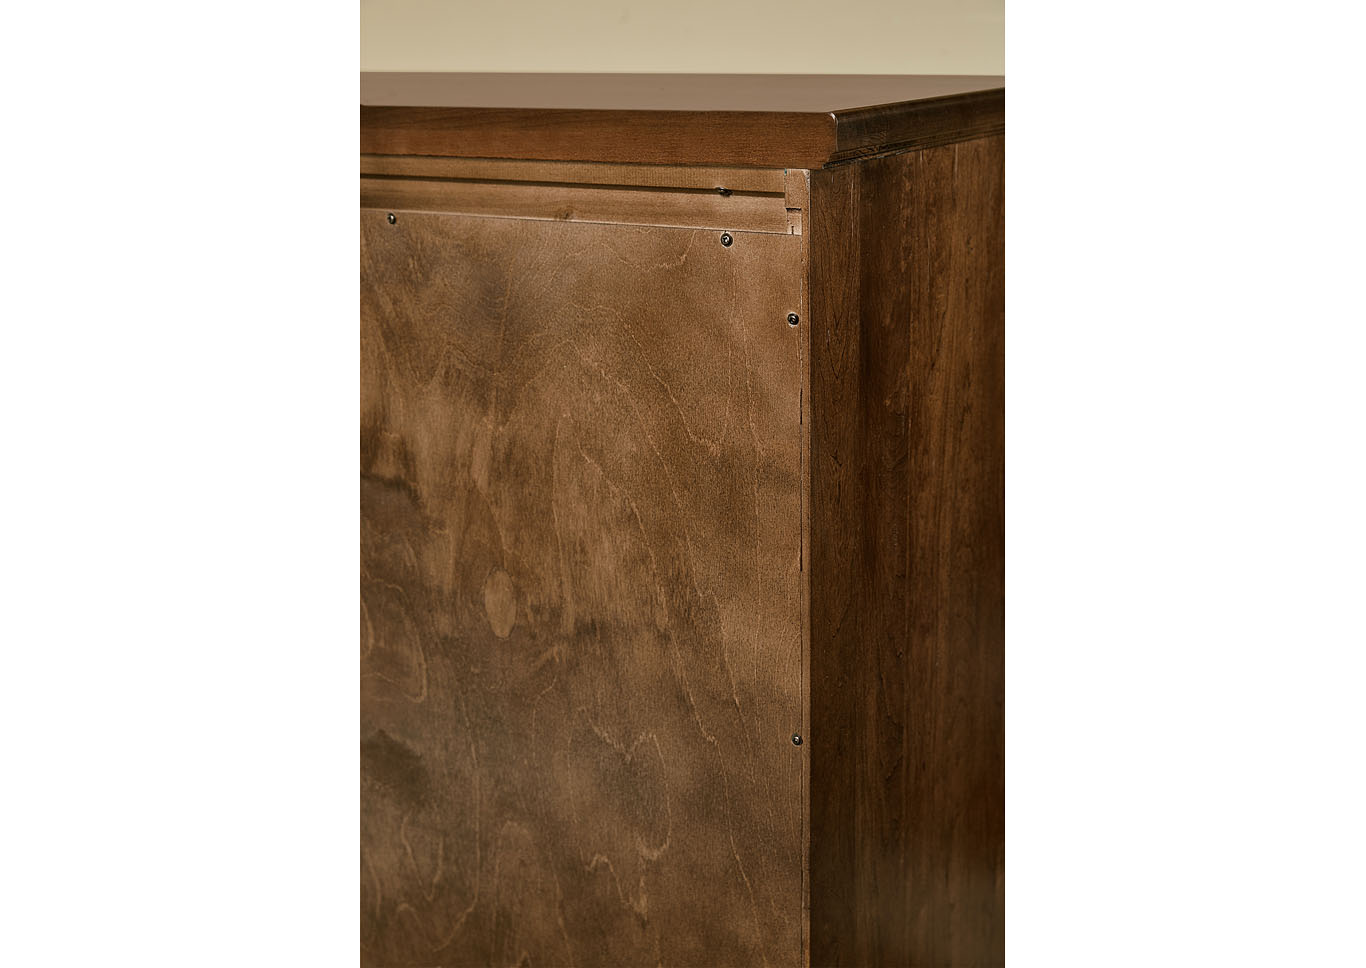 101 - Artisan Choices Rustic Cherry Loft Night Stand - 2 Drawer,Vaughan-Bassett